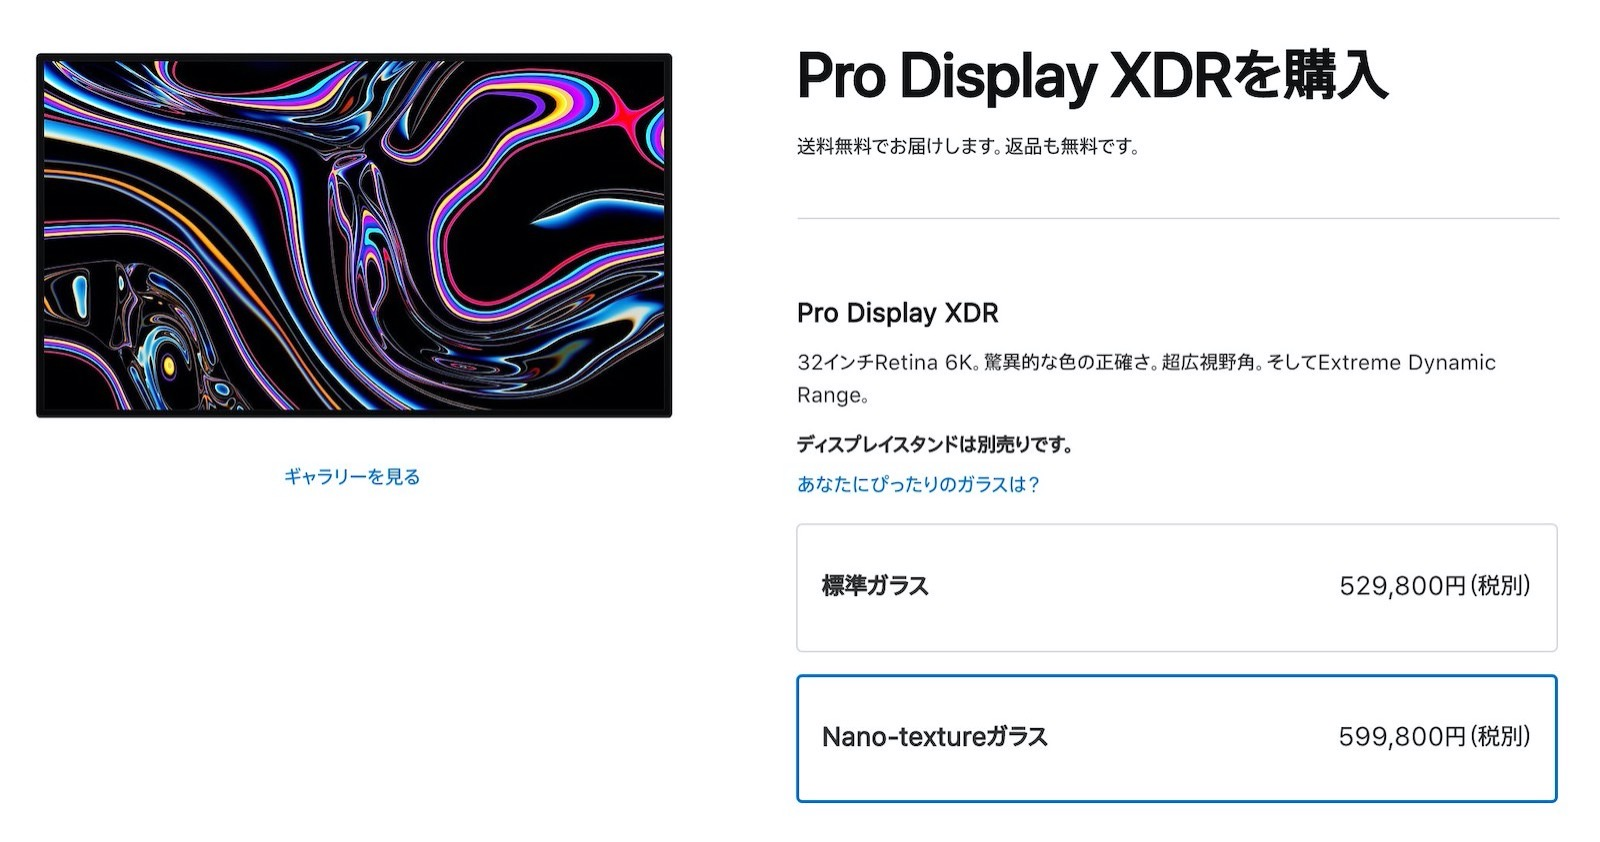 Pro display xdr nano tezxture price